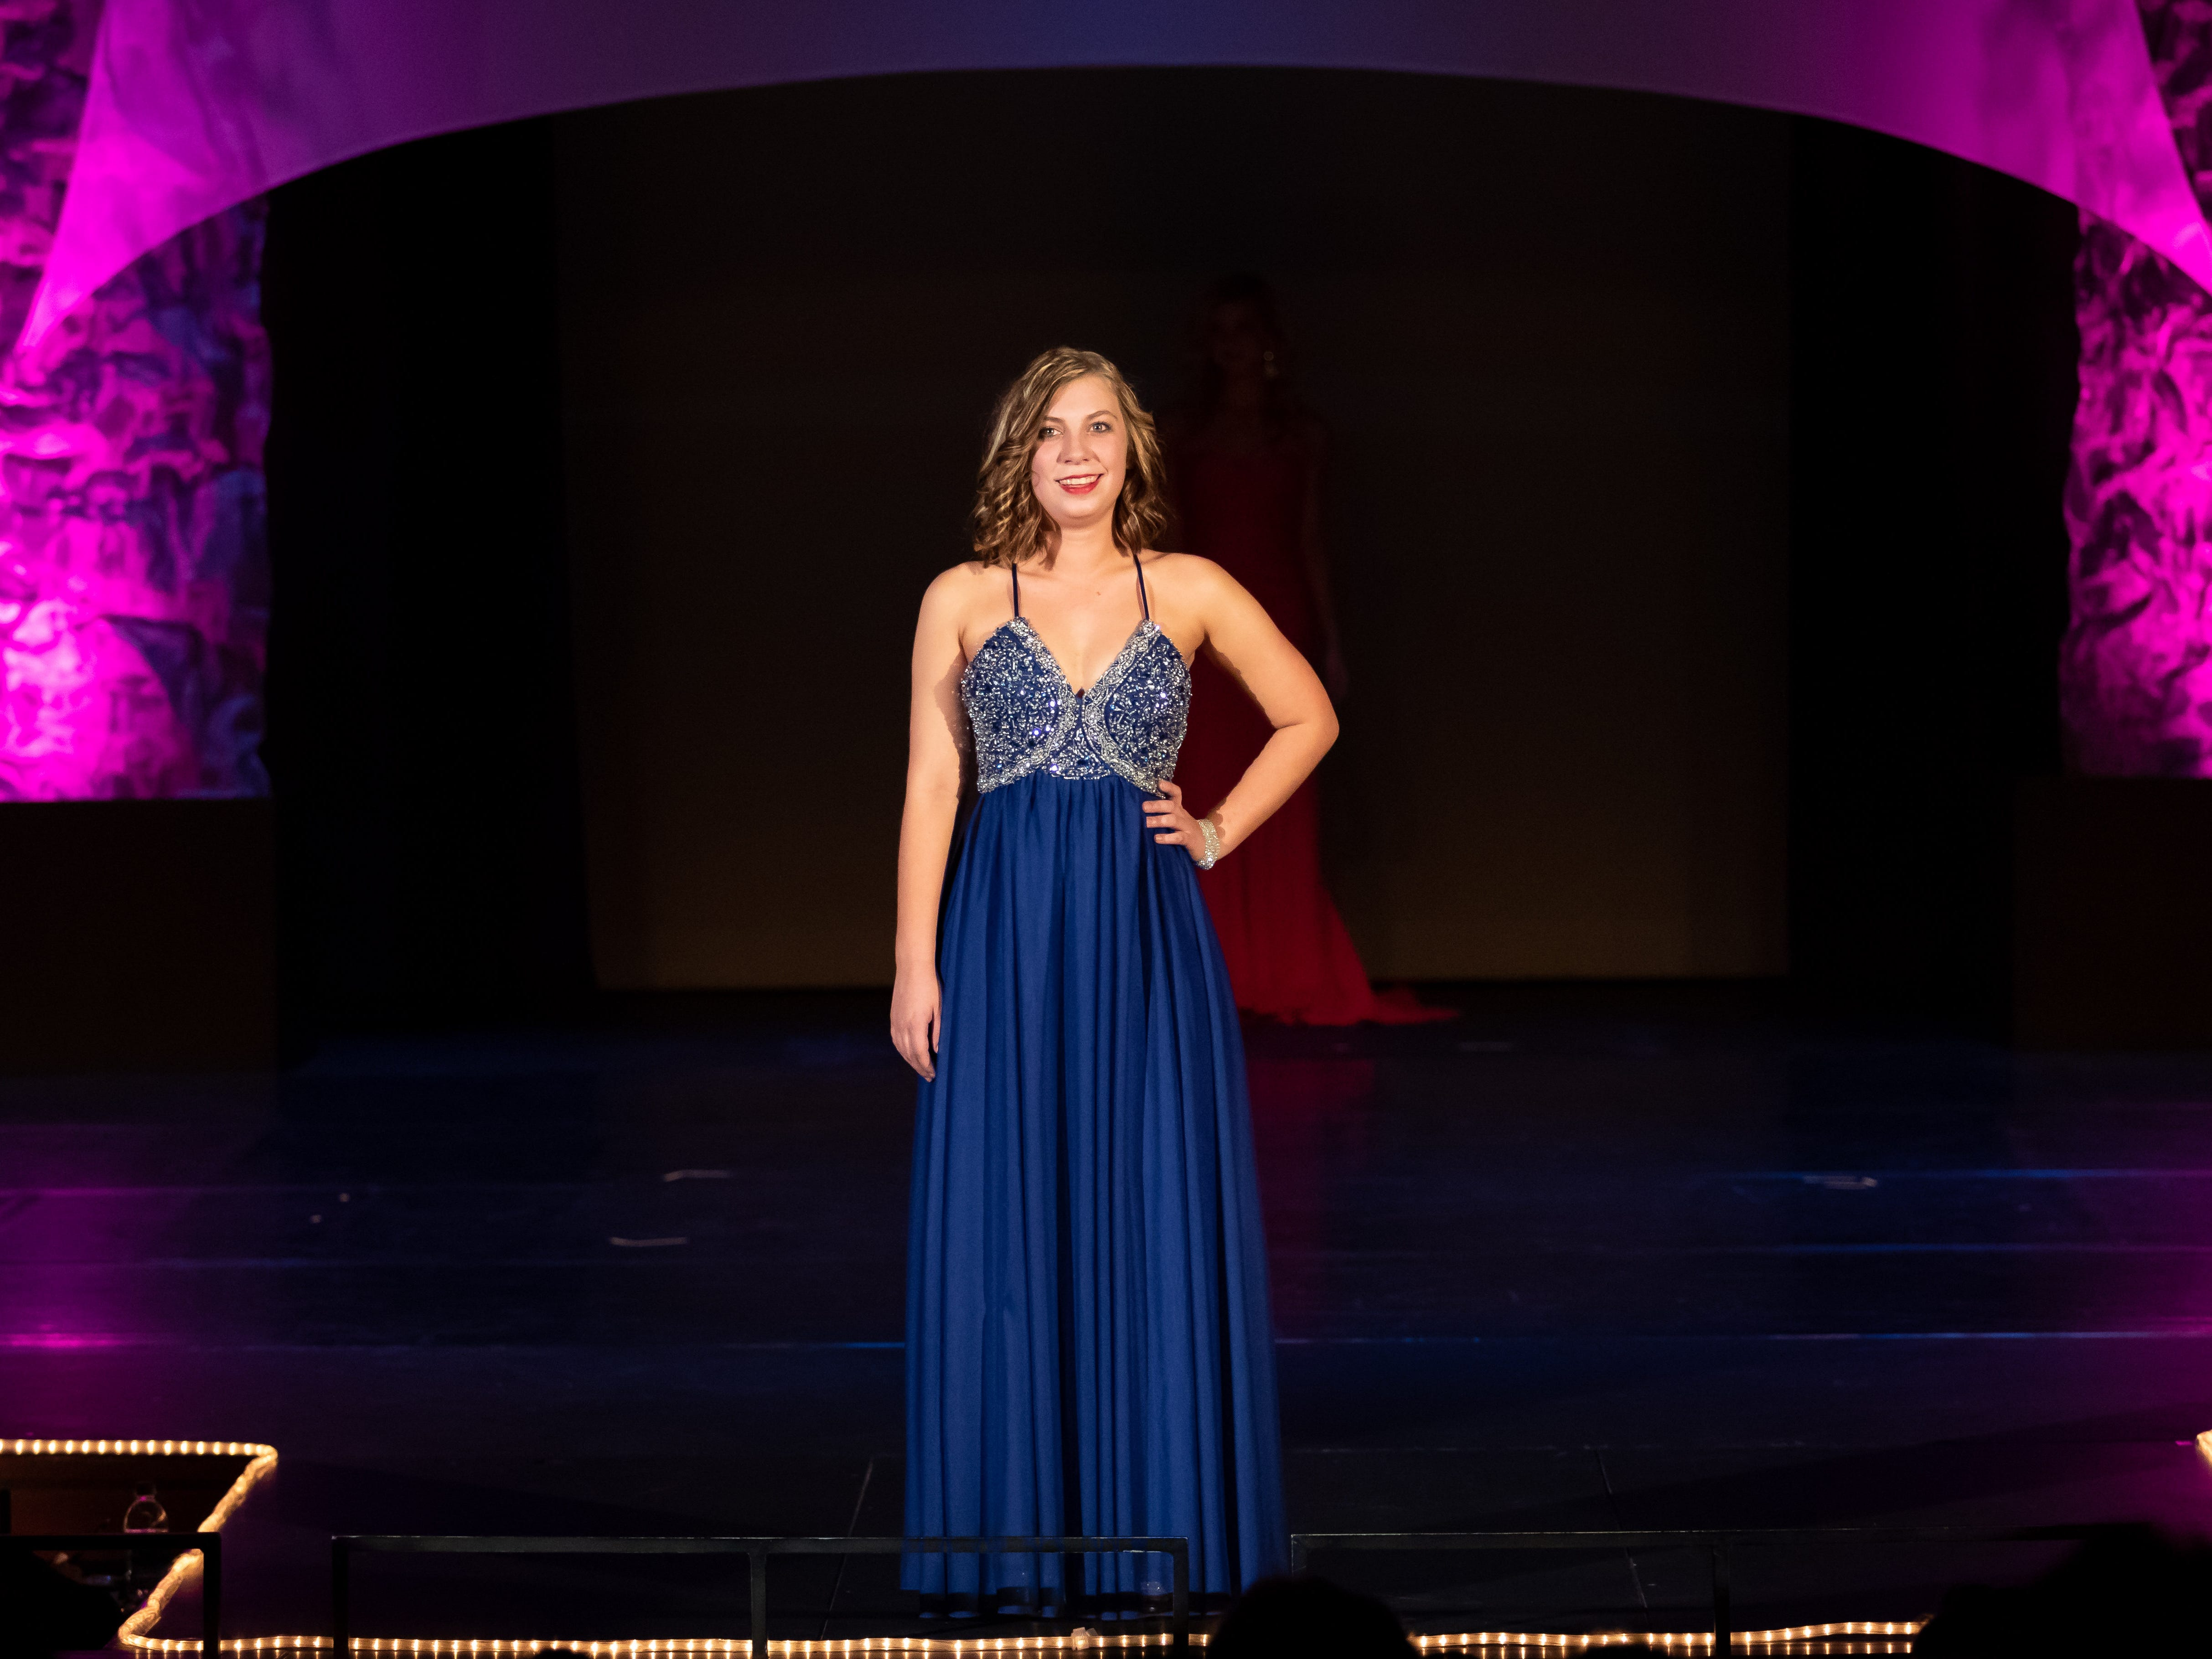 Jennifer Krakow competes in the Evening Wear competition during the 2019 Miss Wisconsin Rapids Area Scholarship Pageant on Saturday, Oct. 27, 2018, at the Performing Arts Center of Wisconsin Rapids.